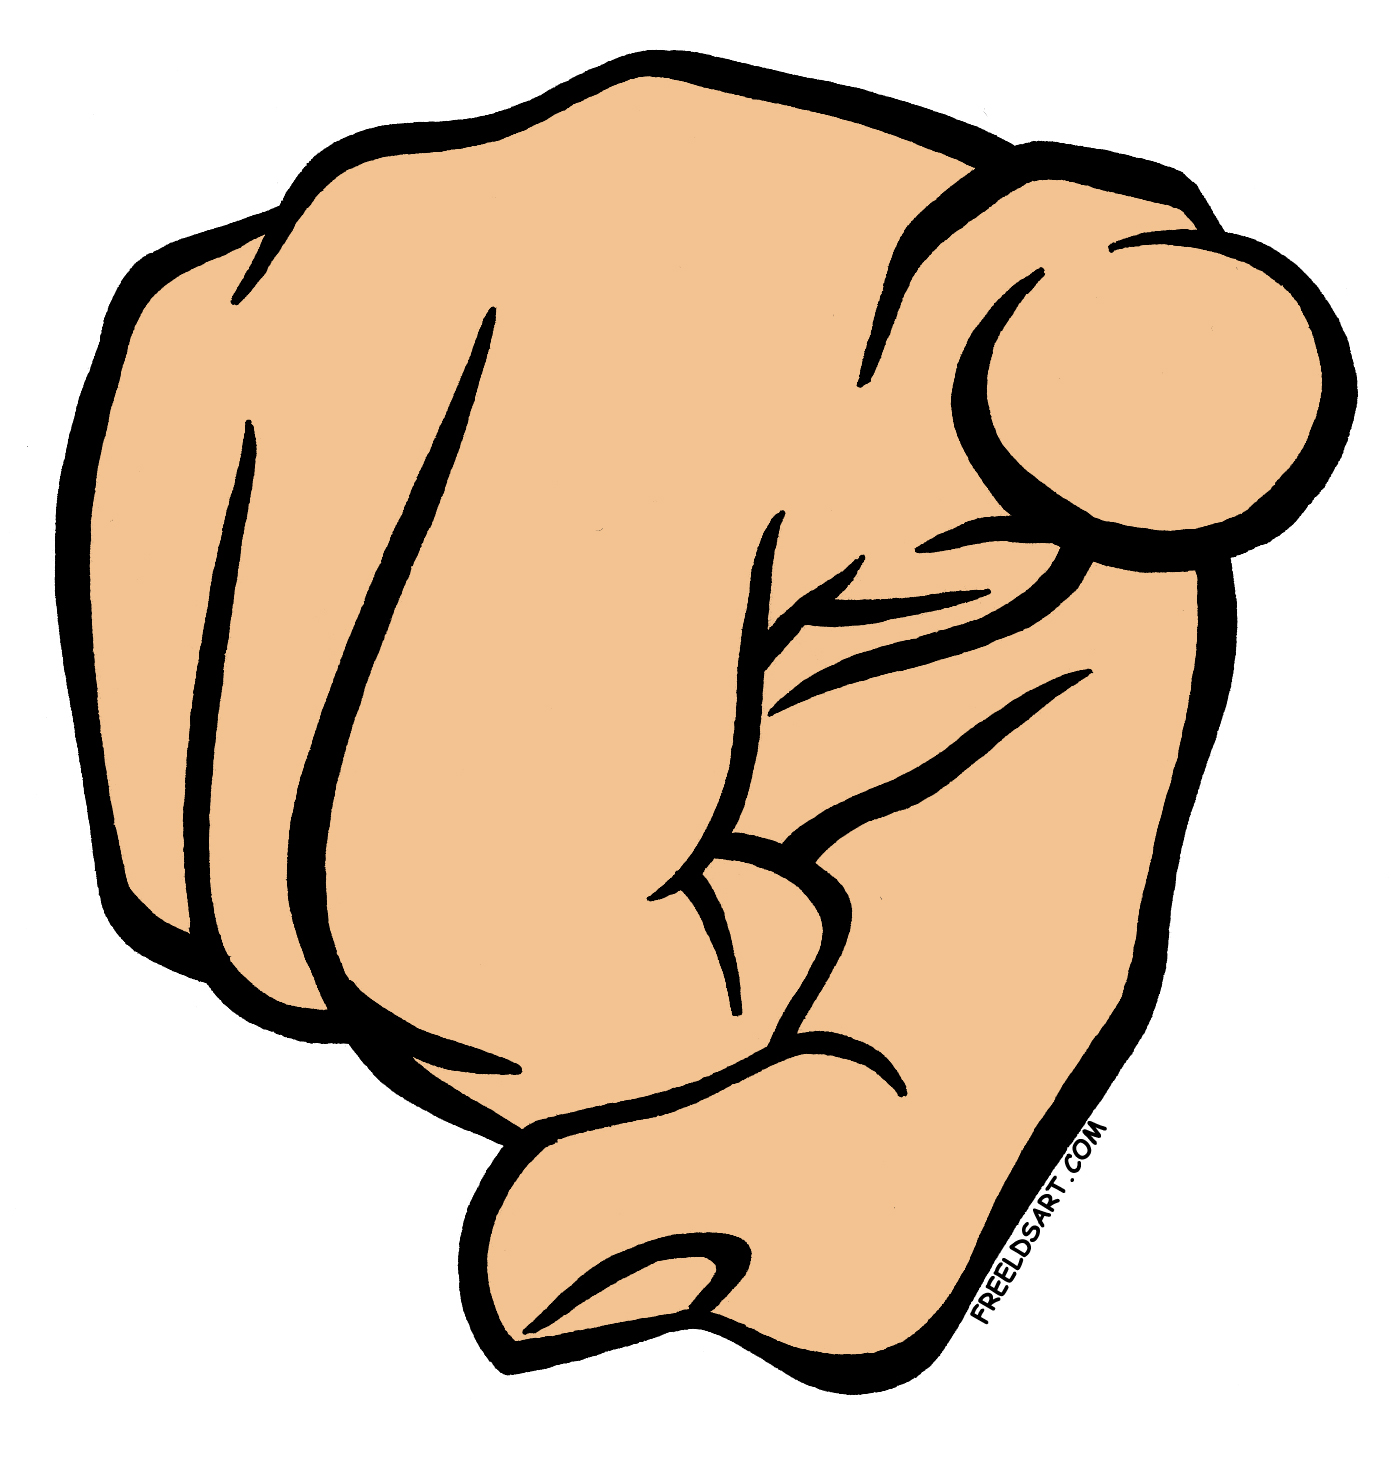 Me Pointing Finger Clipart-Me Pointing Finger Clipart-4